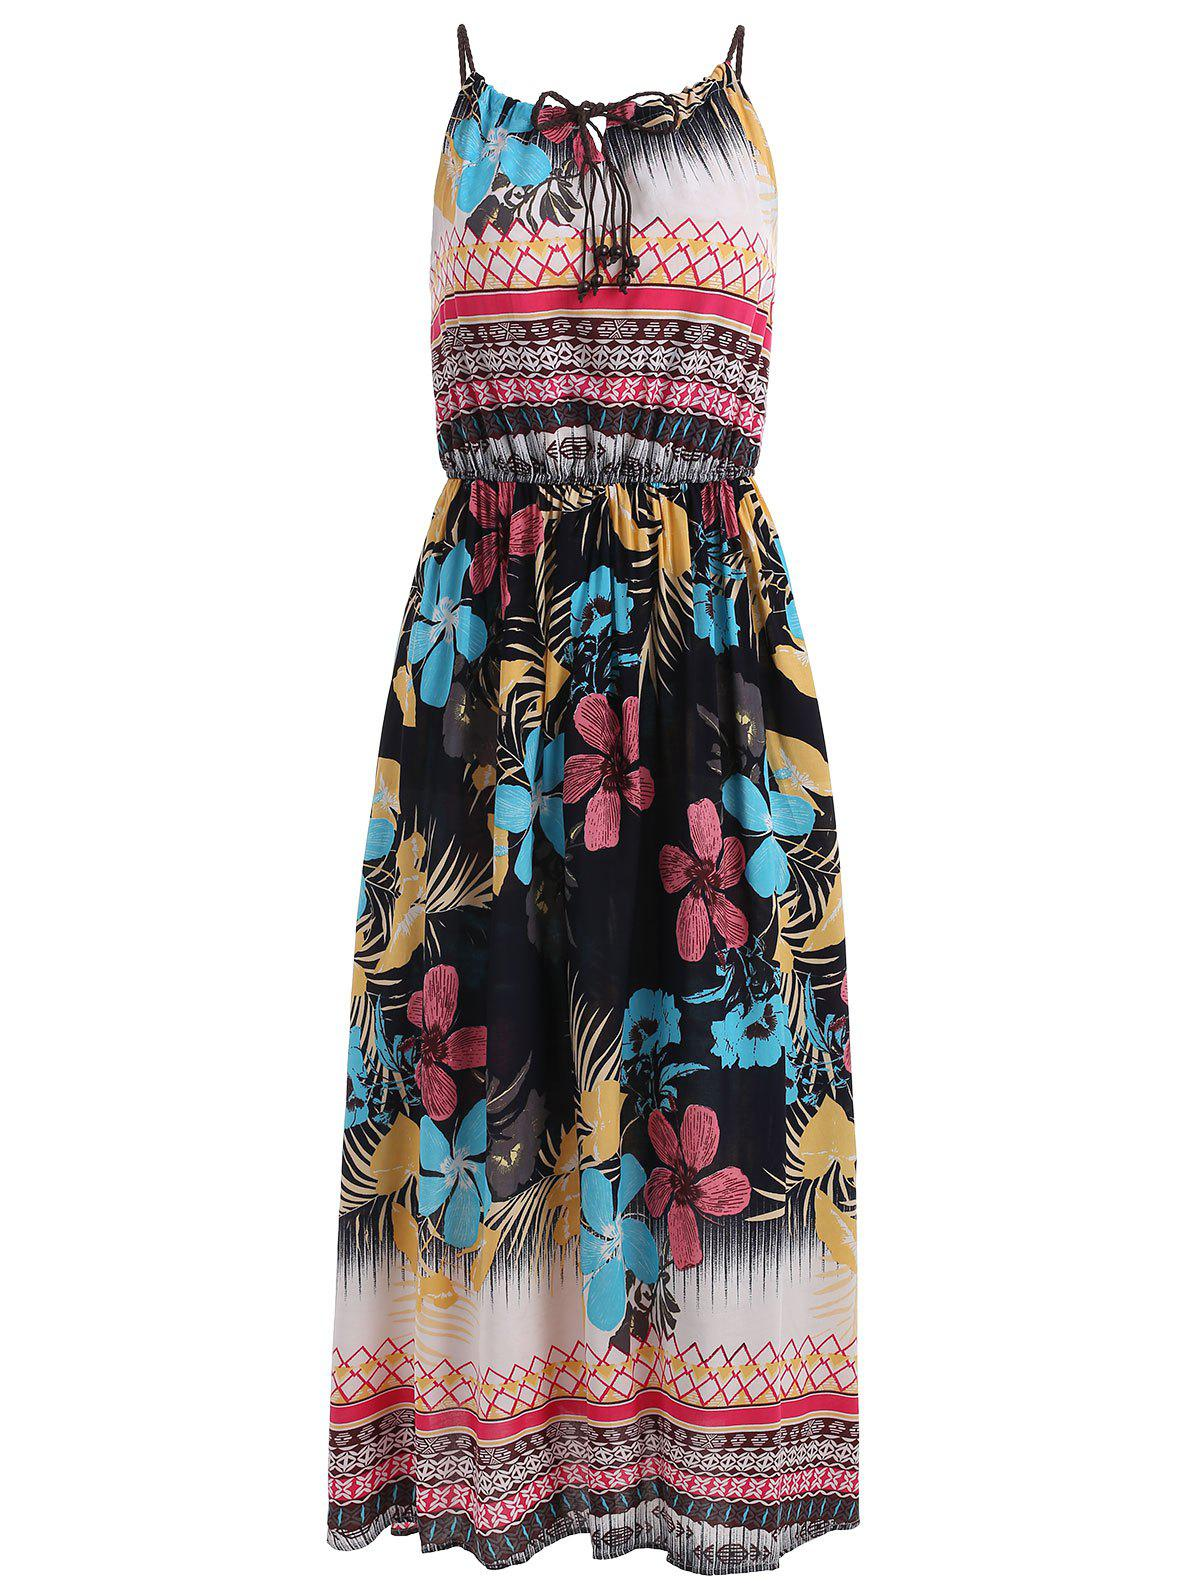 ca4b1ec72ea Print Spaghetti Strap Casual Dress - One Size